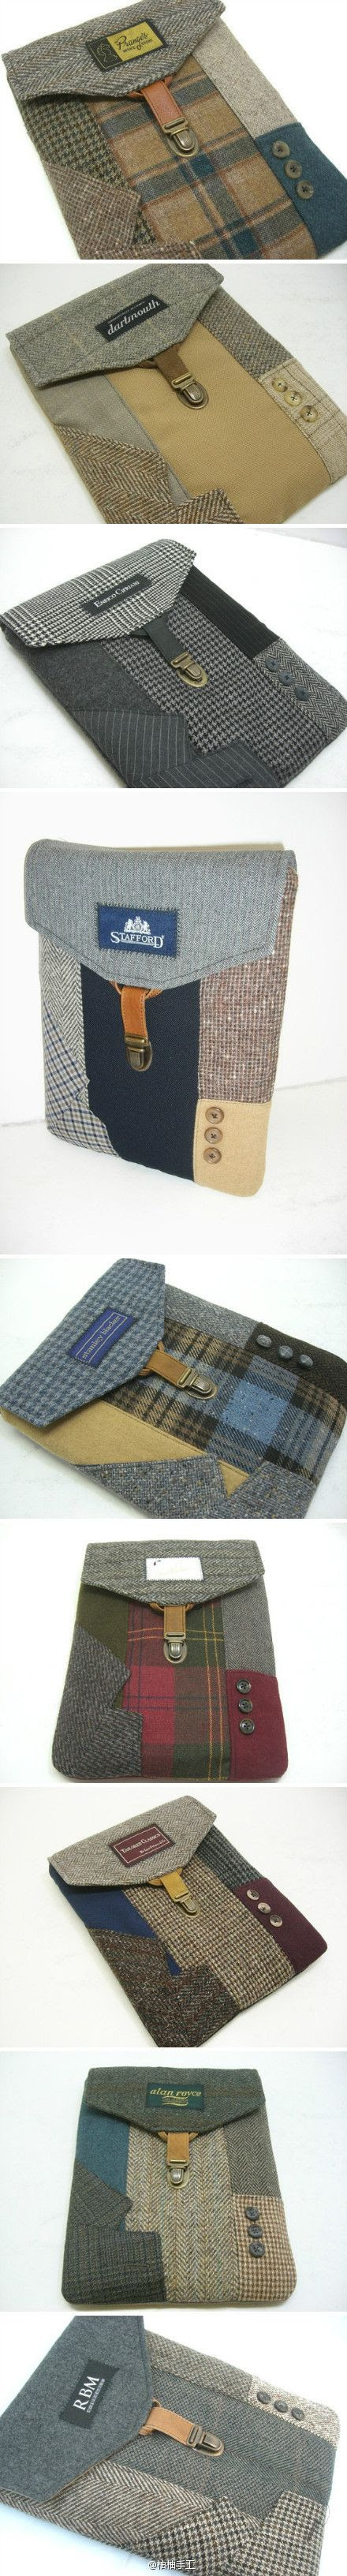 tablet cover designs 3